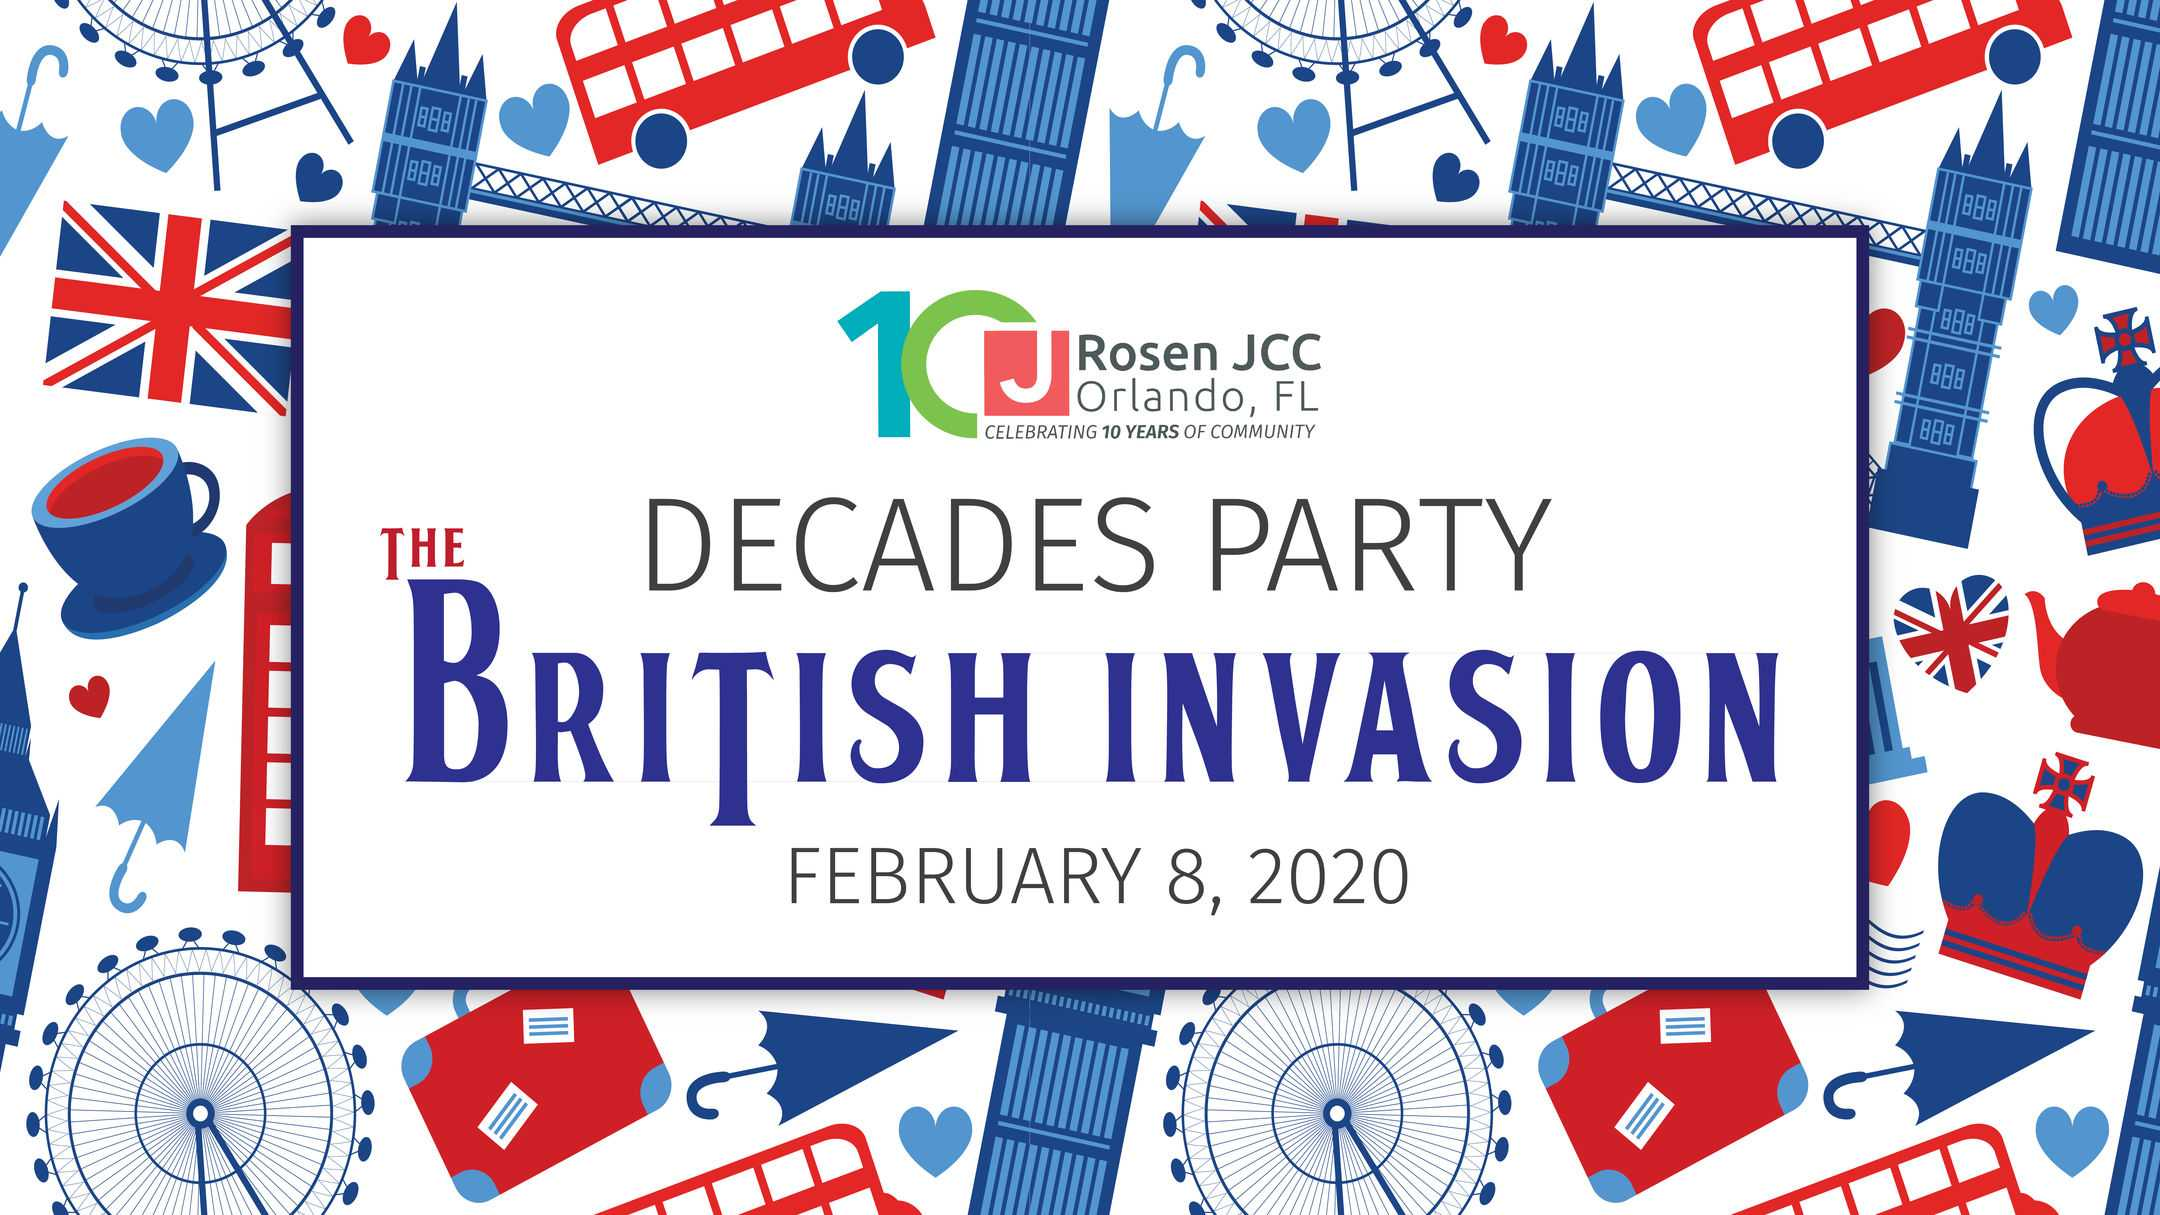 Decades Party - The British Invasion - February 8, 2020